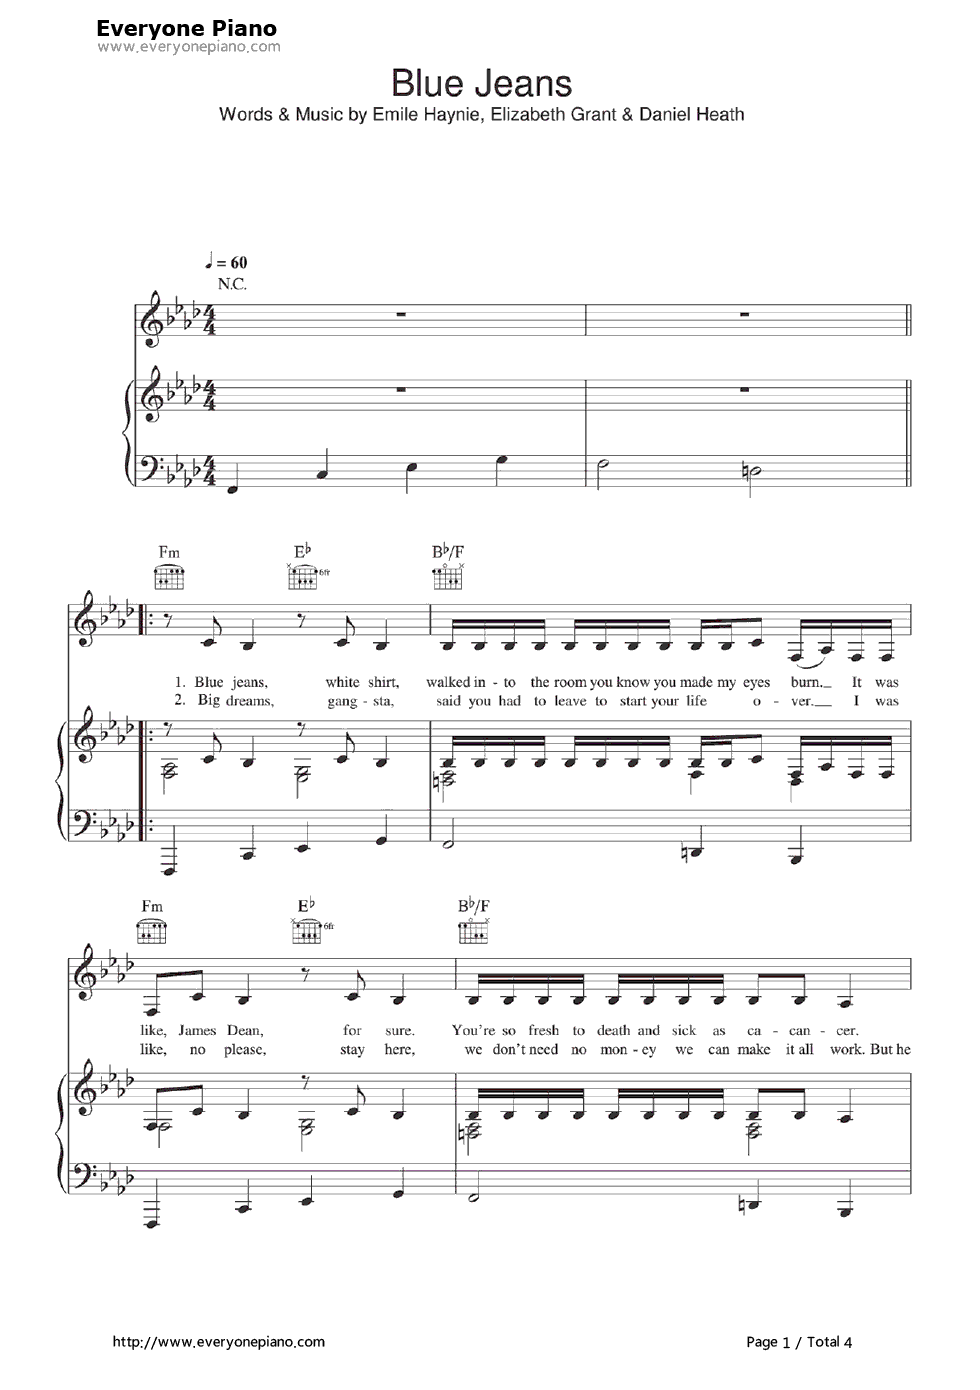 Blue jeans lana del rey stave preview 1 free piano sheet music listen now print sheet blue jeans lana del rey stave preview 1 hexwebz Image collections